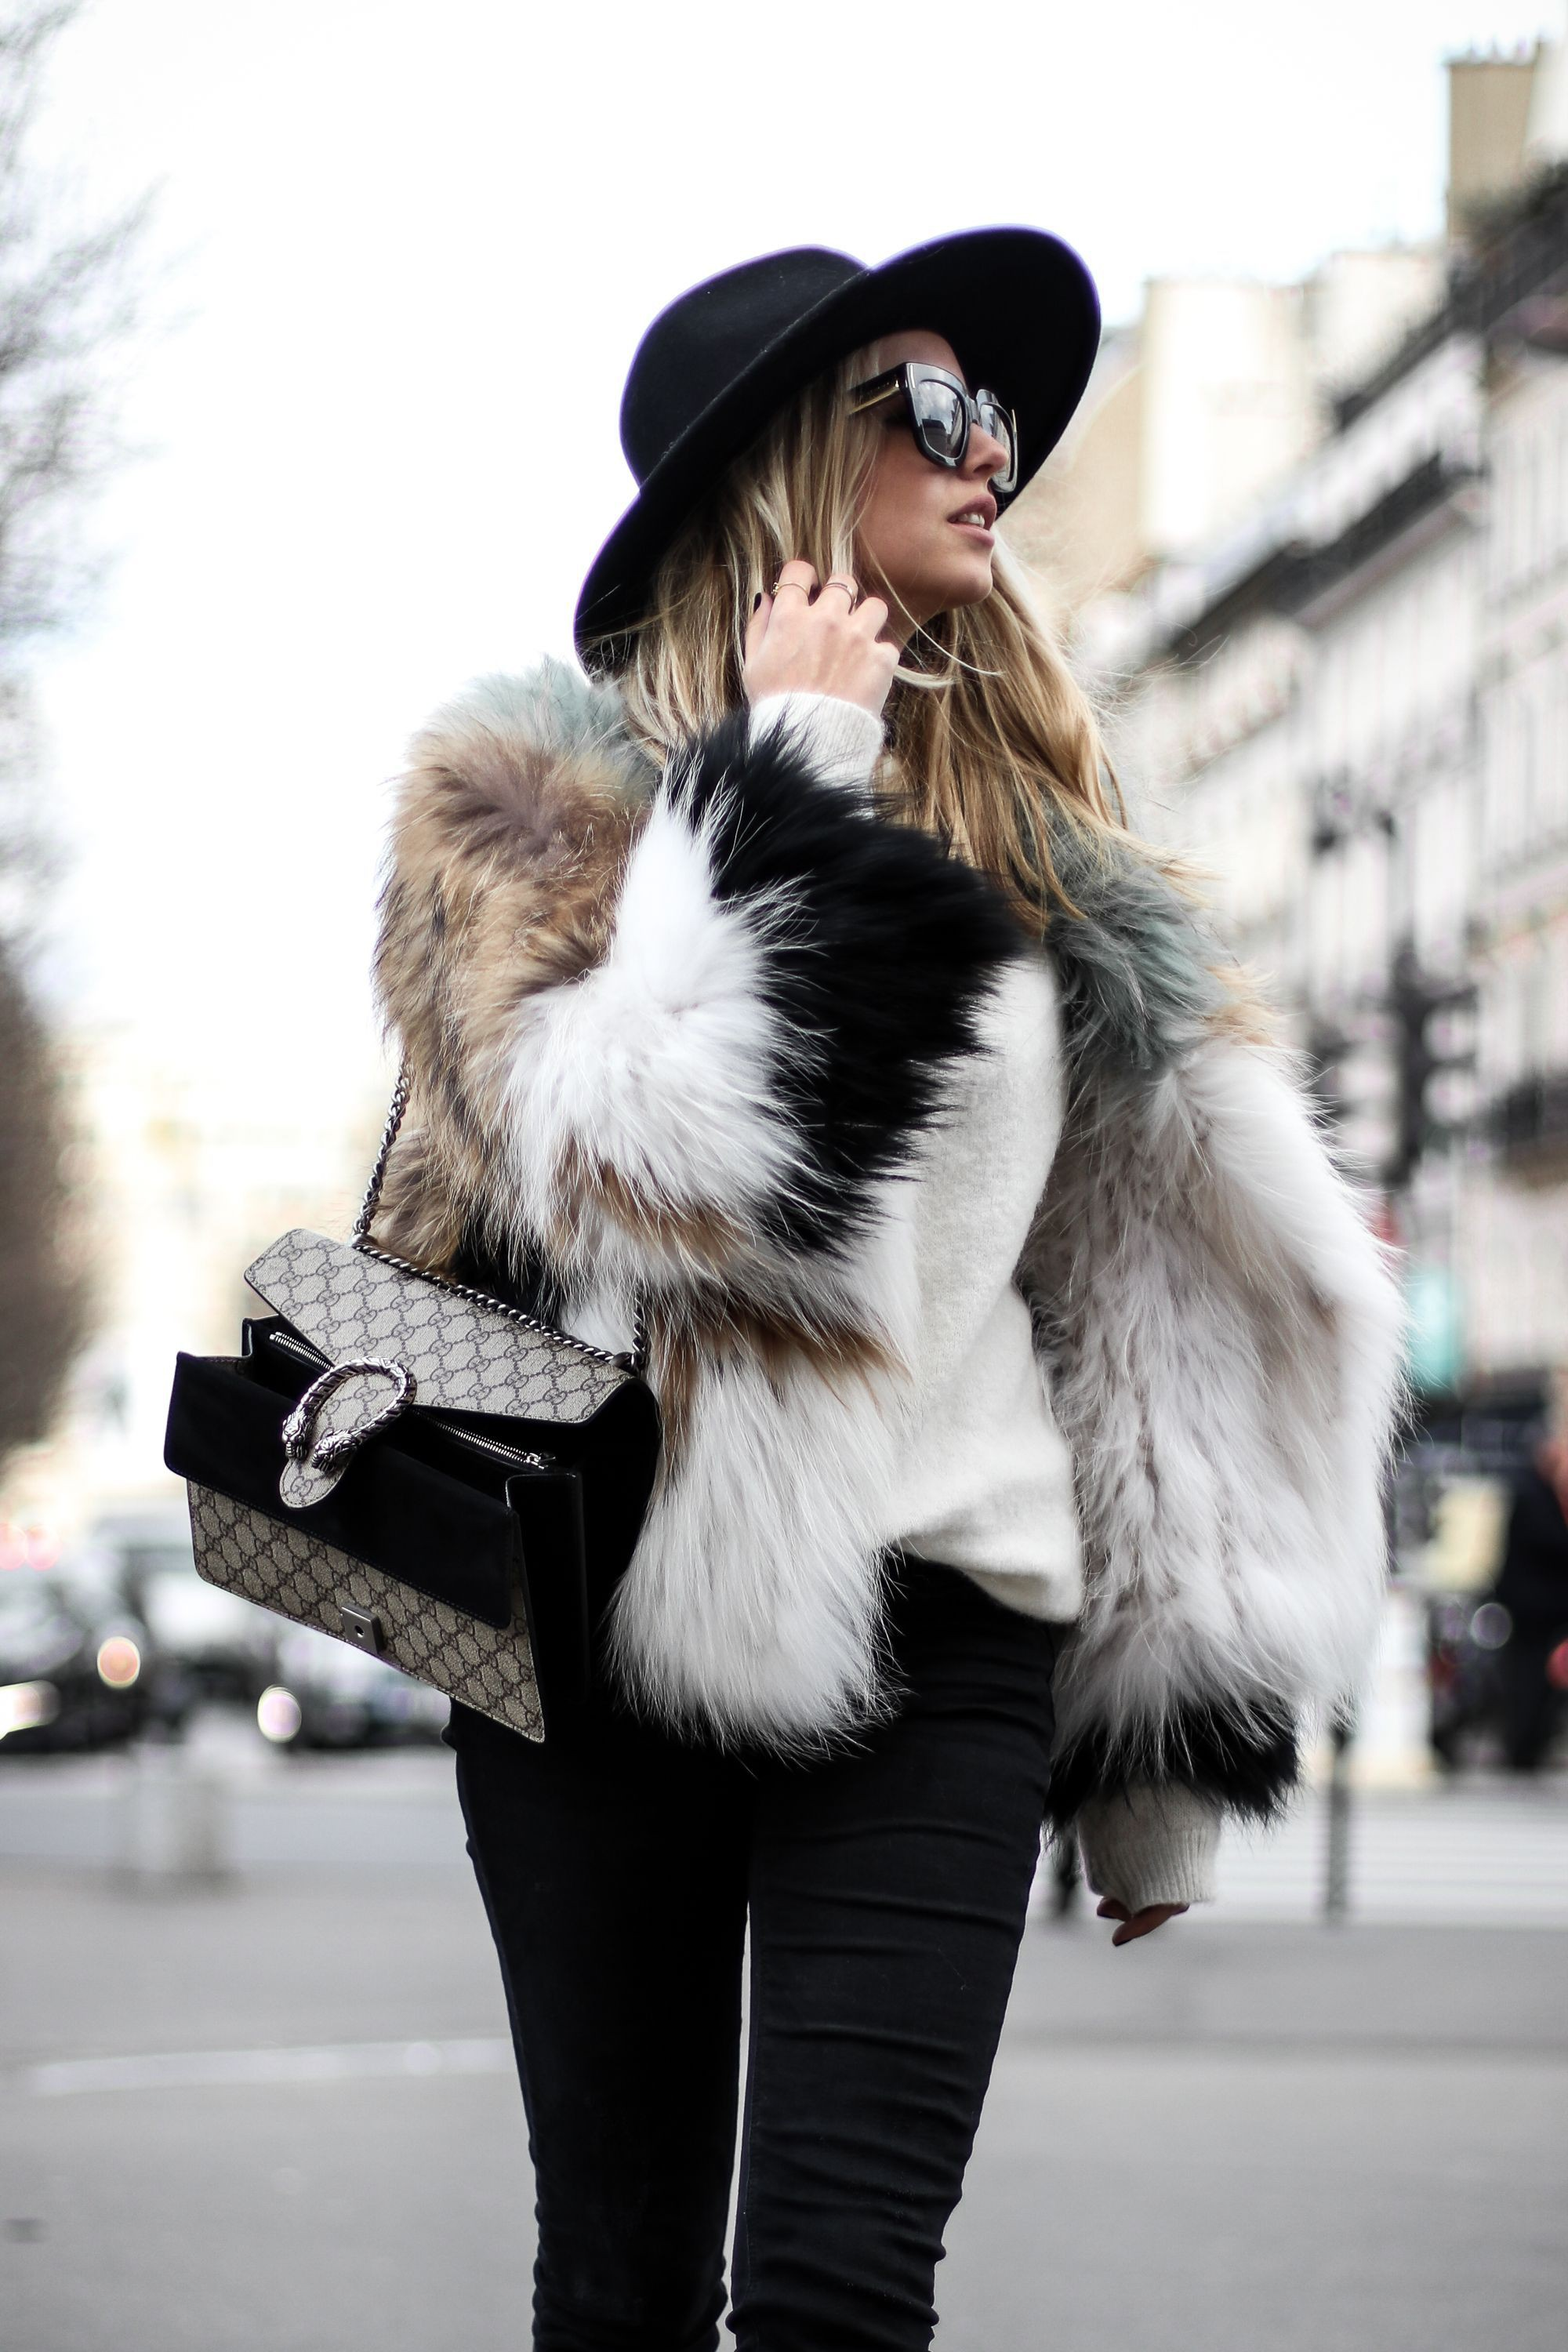 Most popular suggestions for fur clothing, London Fashion Week